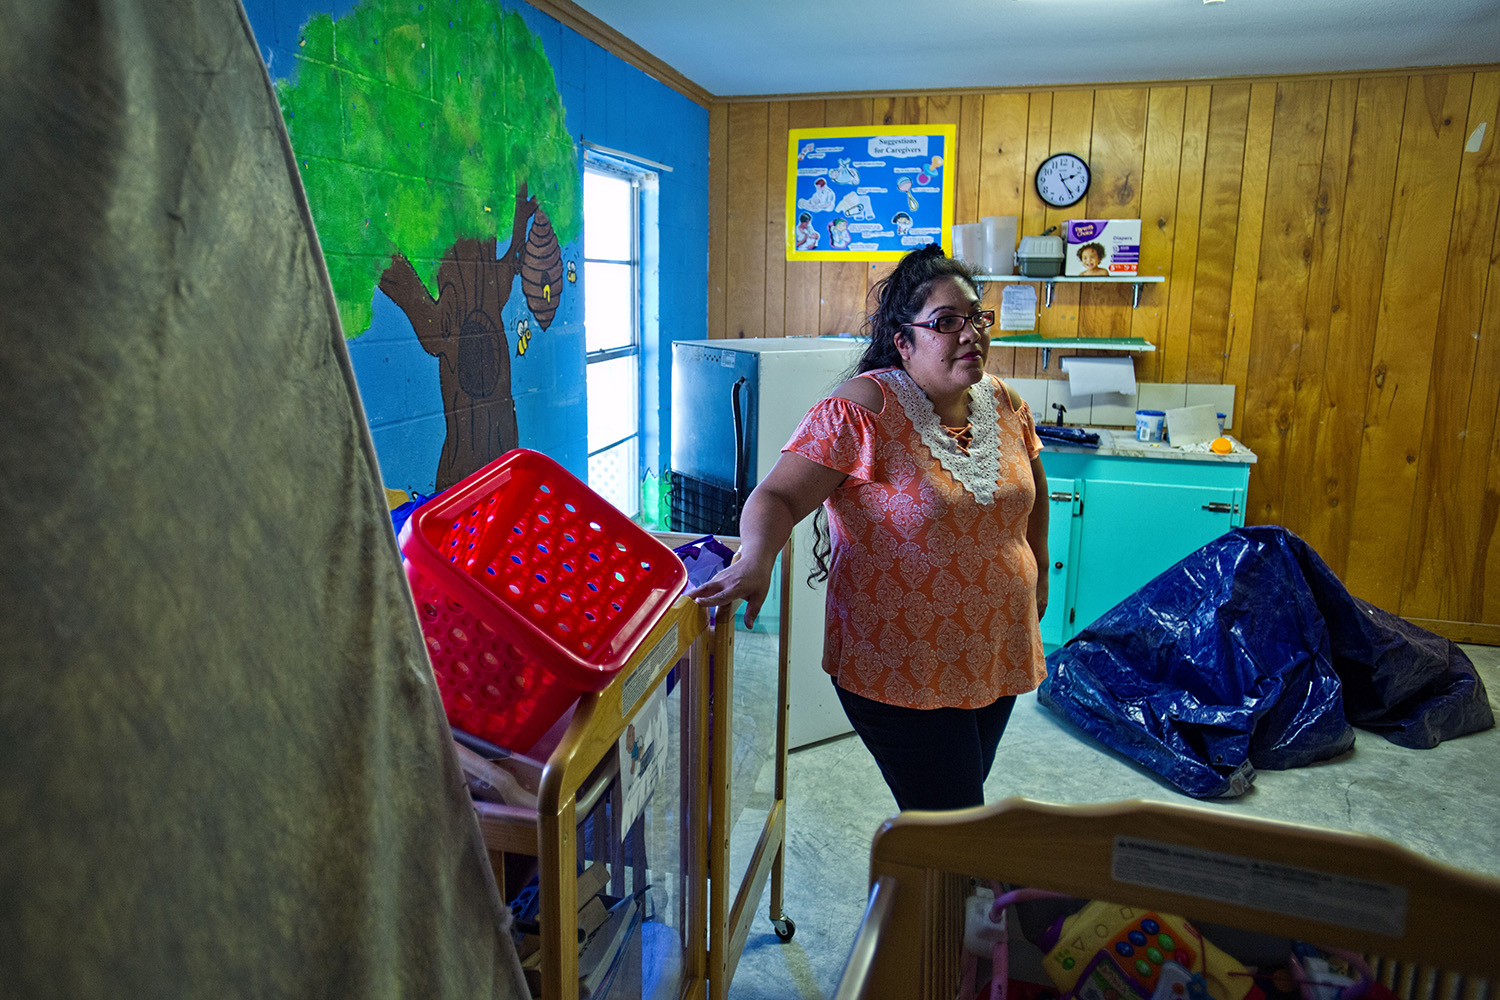 LaVeta Rodriguez, director of the Little Lights Learning Center, stands among the unused cribs, toys and equipment in the baby room at the center.